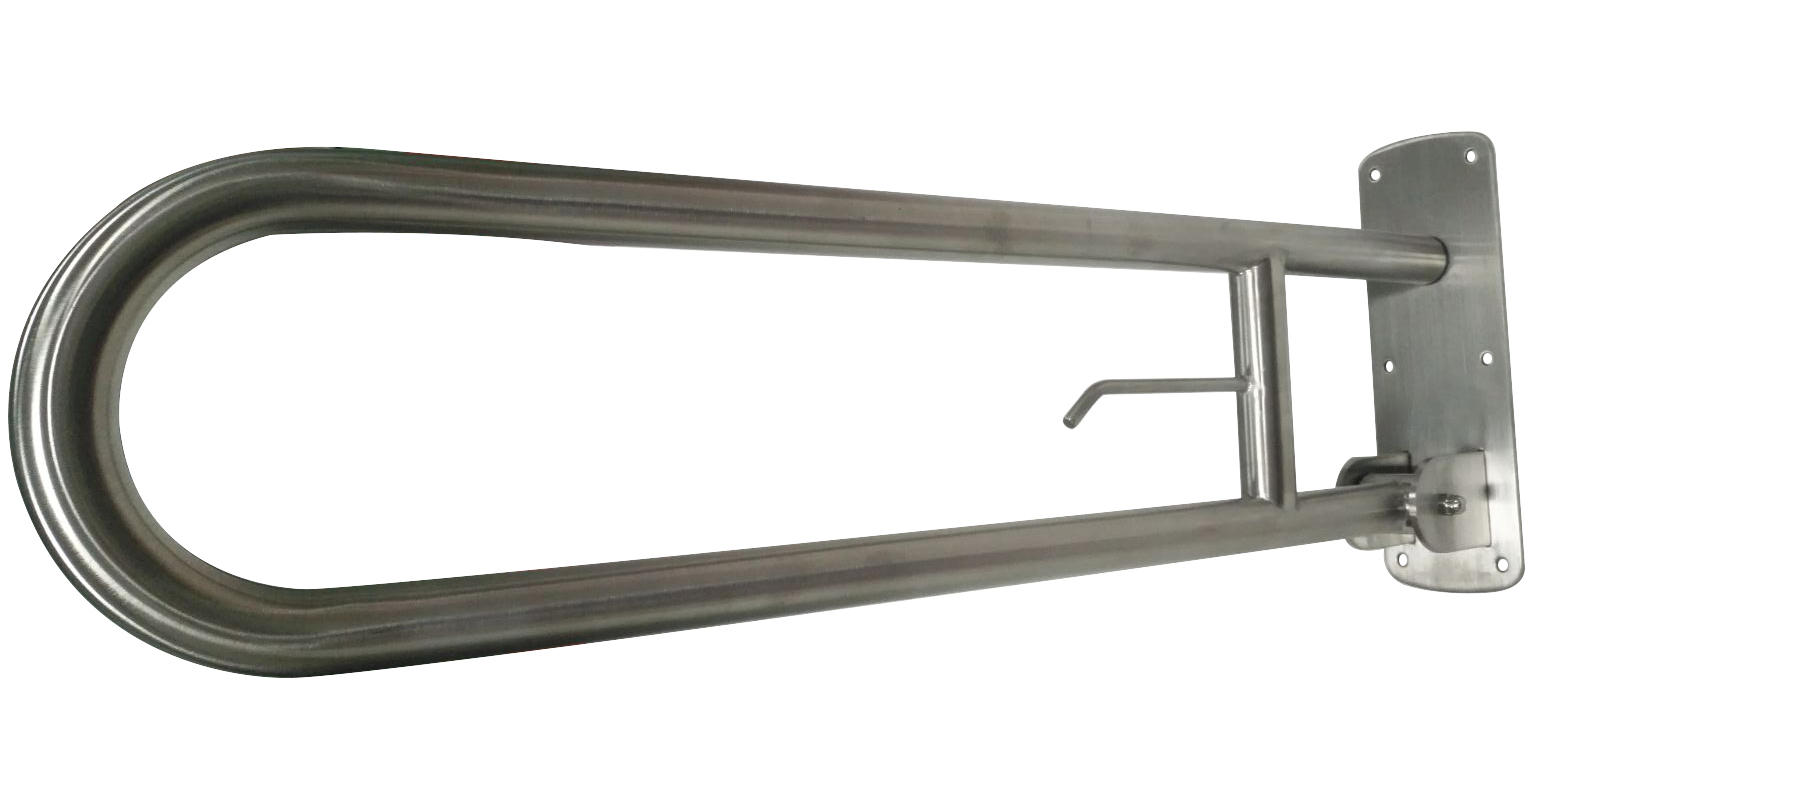 high quality best grab bars company for hotel